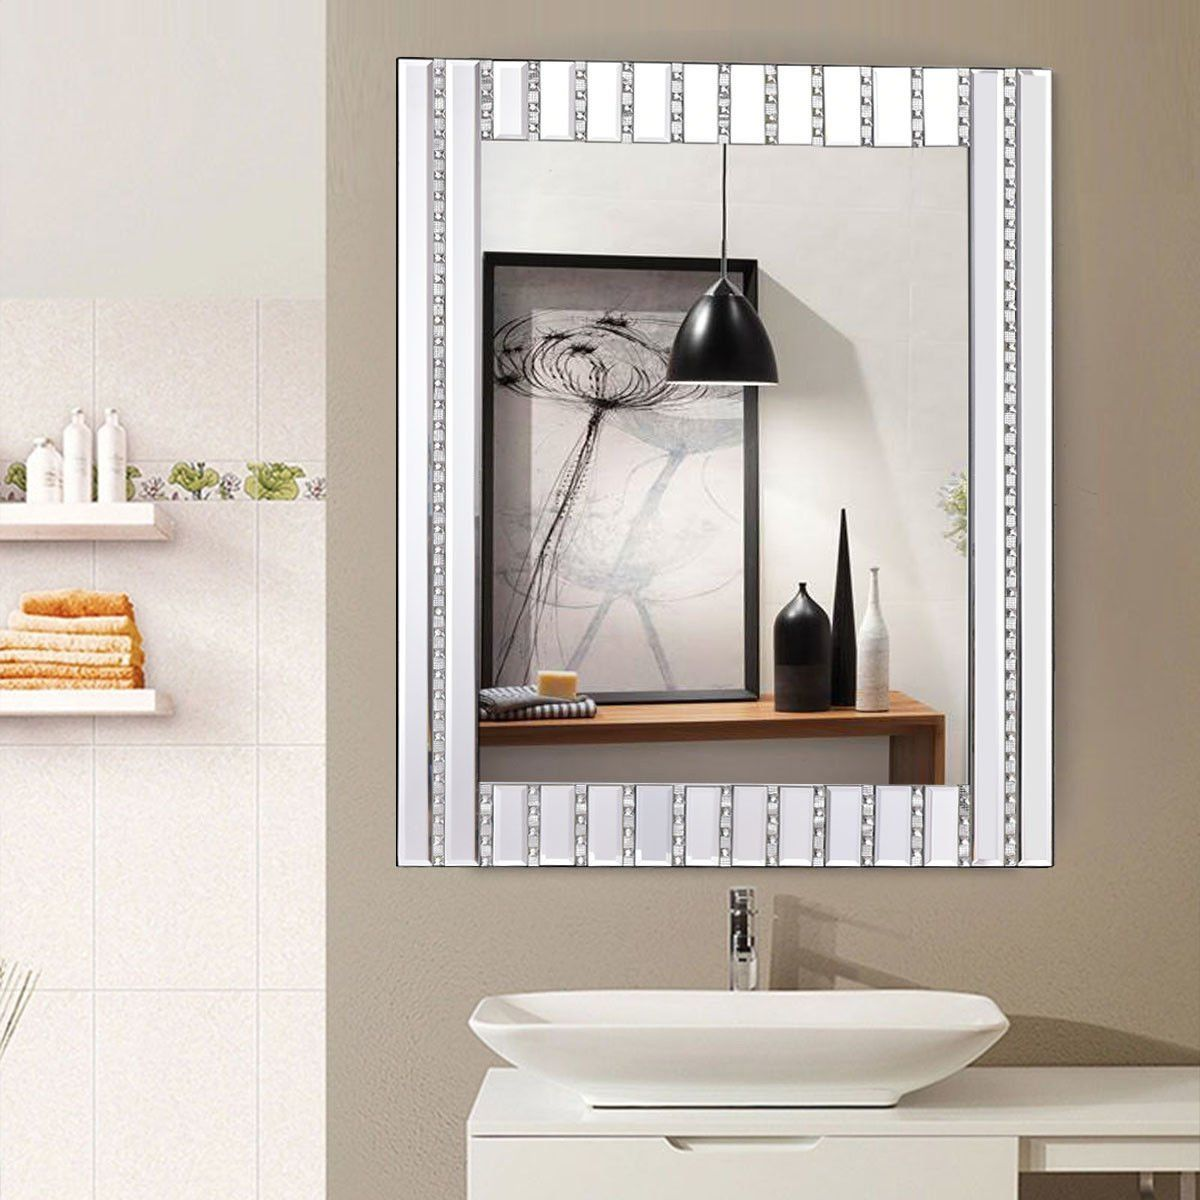 Tangkula 23 5 X 31 5 Wall Mirror Beveled Wood Frame Mirror Rectangle Bathroom Home Decor With Resin Diamond Mirro Wall Vanity Wood Framed Mirror Frames On Wall [ 1200 x 1200 Pixel ]